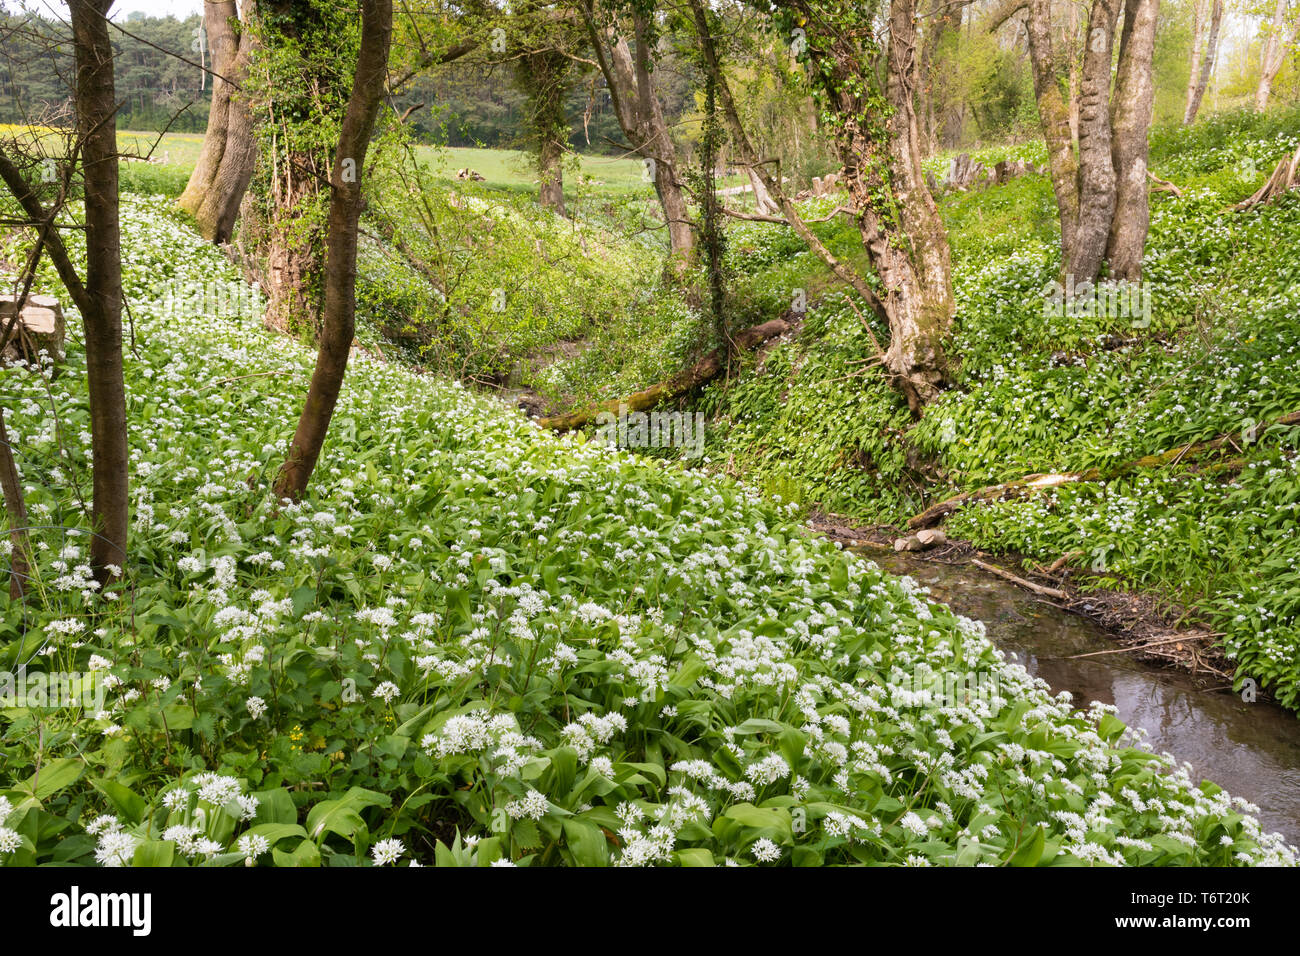 wild-garlic-also-called-ramsons-or-buckrams-allium-ursinum-wildflowers-in-hampshire-woodland-countryside-landscape-during-early-may-or-spring-T6T20K.jpg